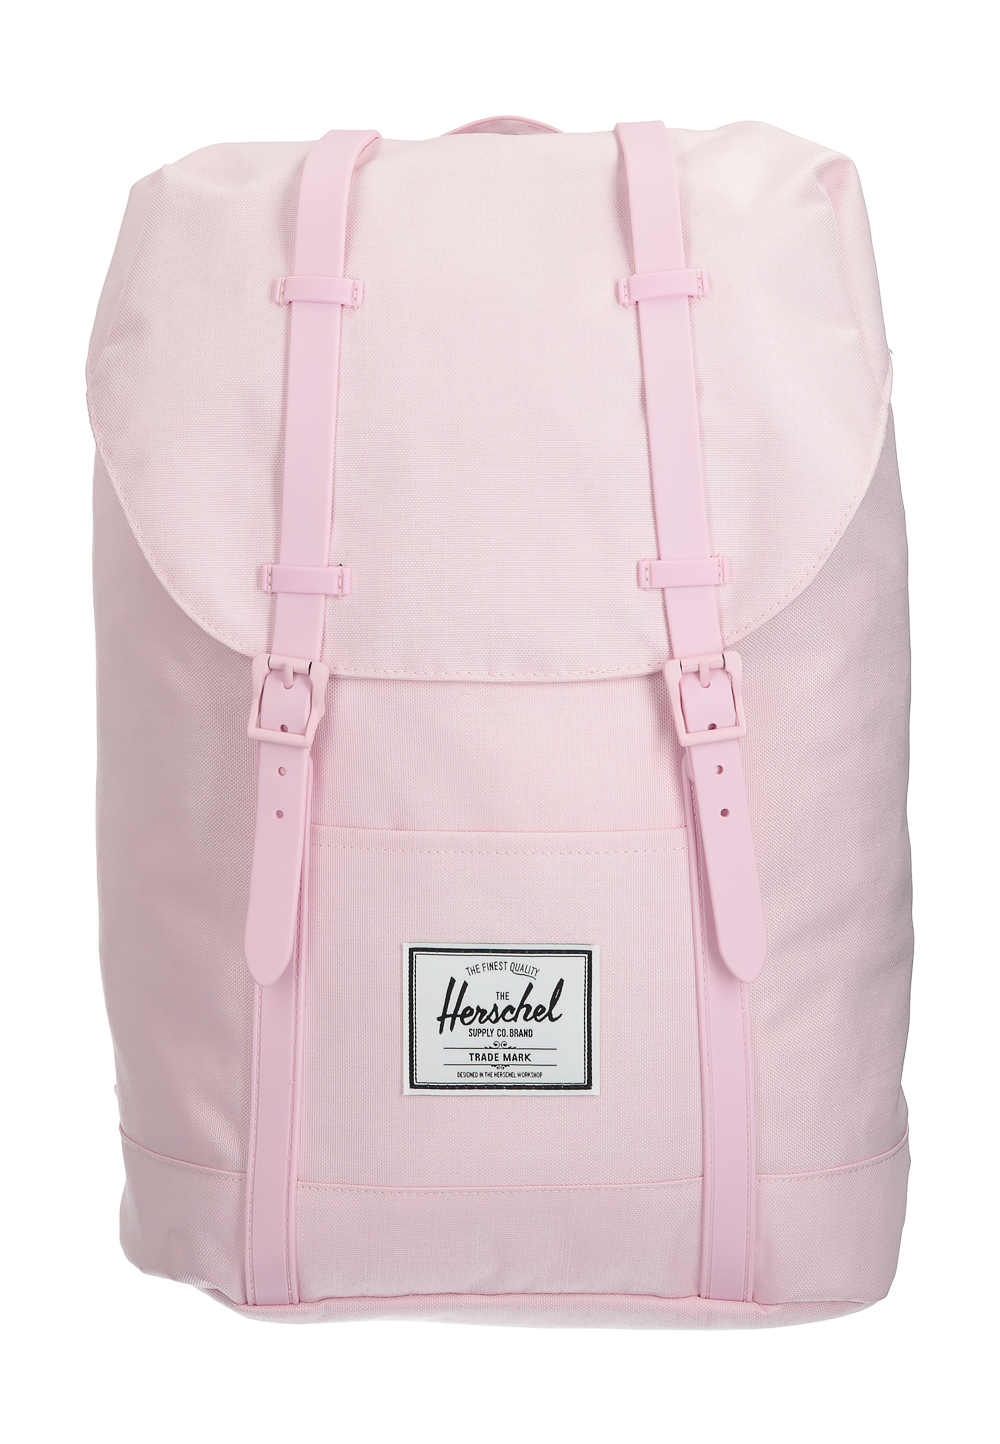 Rucksack Retreat, H43 x B30,5 x T15 cm rosa